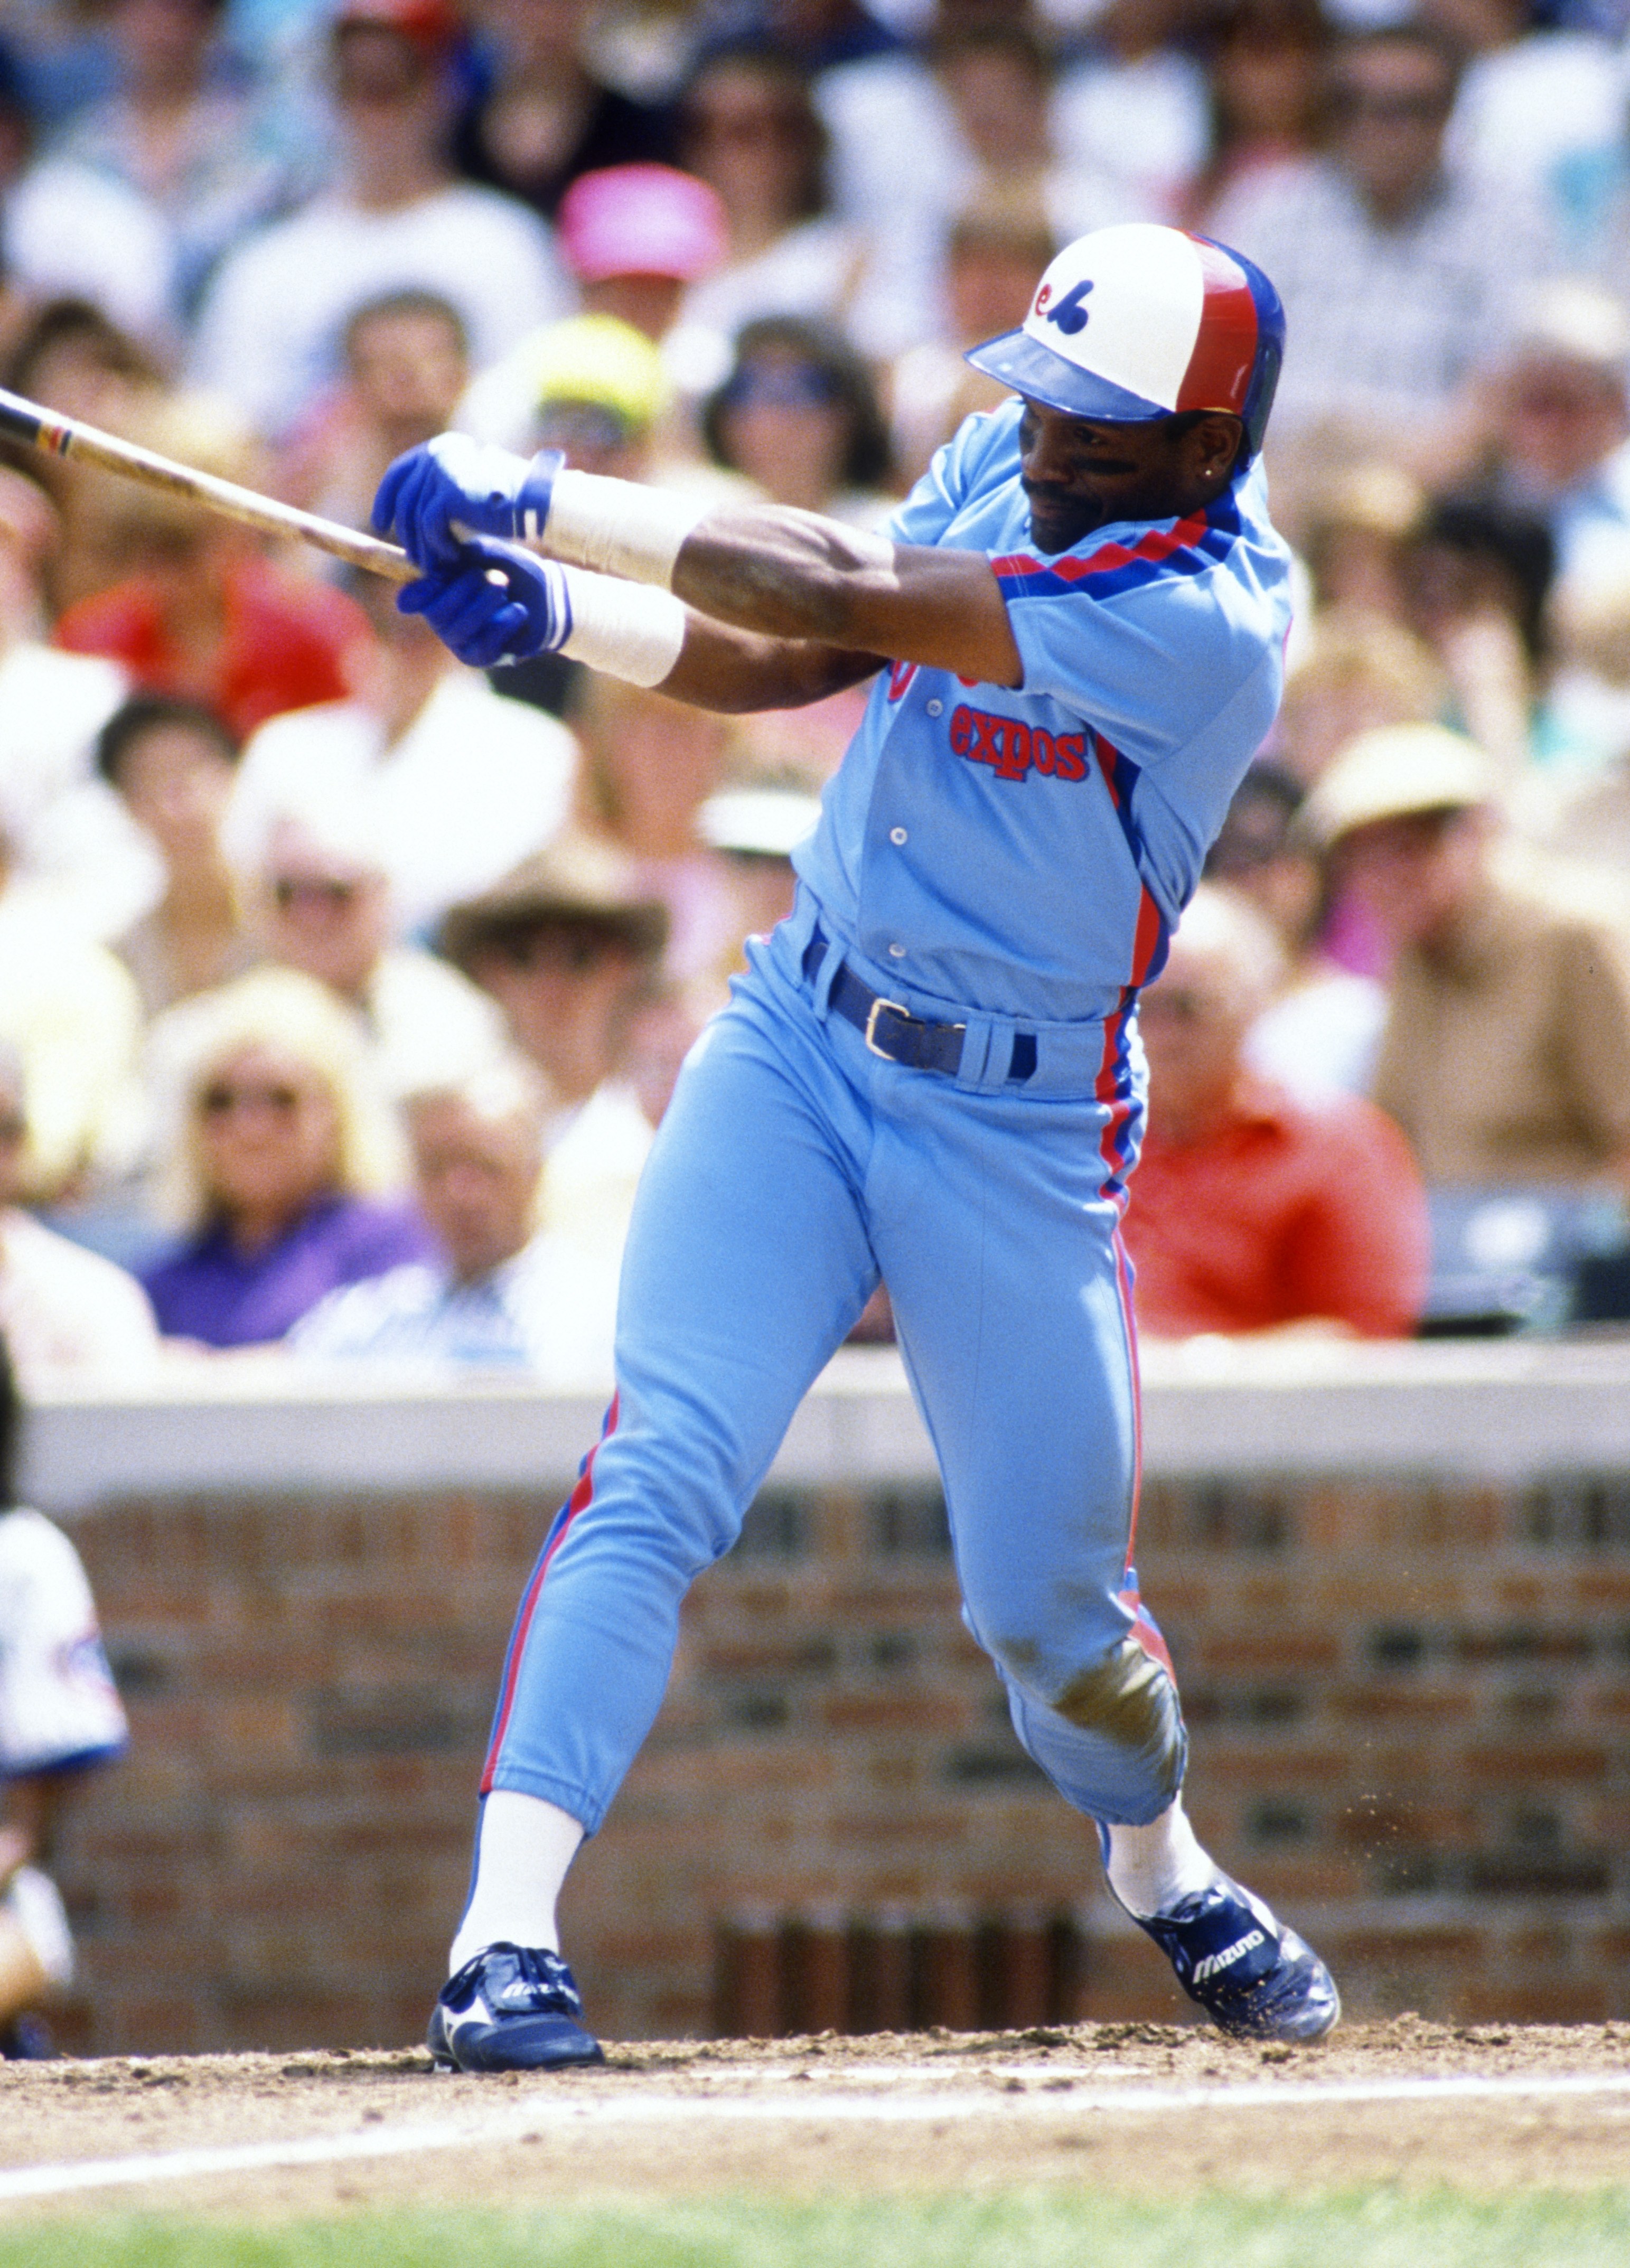 Tim Raines of the Montreal Expos bats during an MLB game versus the Chicago Cubs at Wrigley Field in Chicago, Illinois. Raines played for the Expos from 1979-1990.